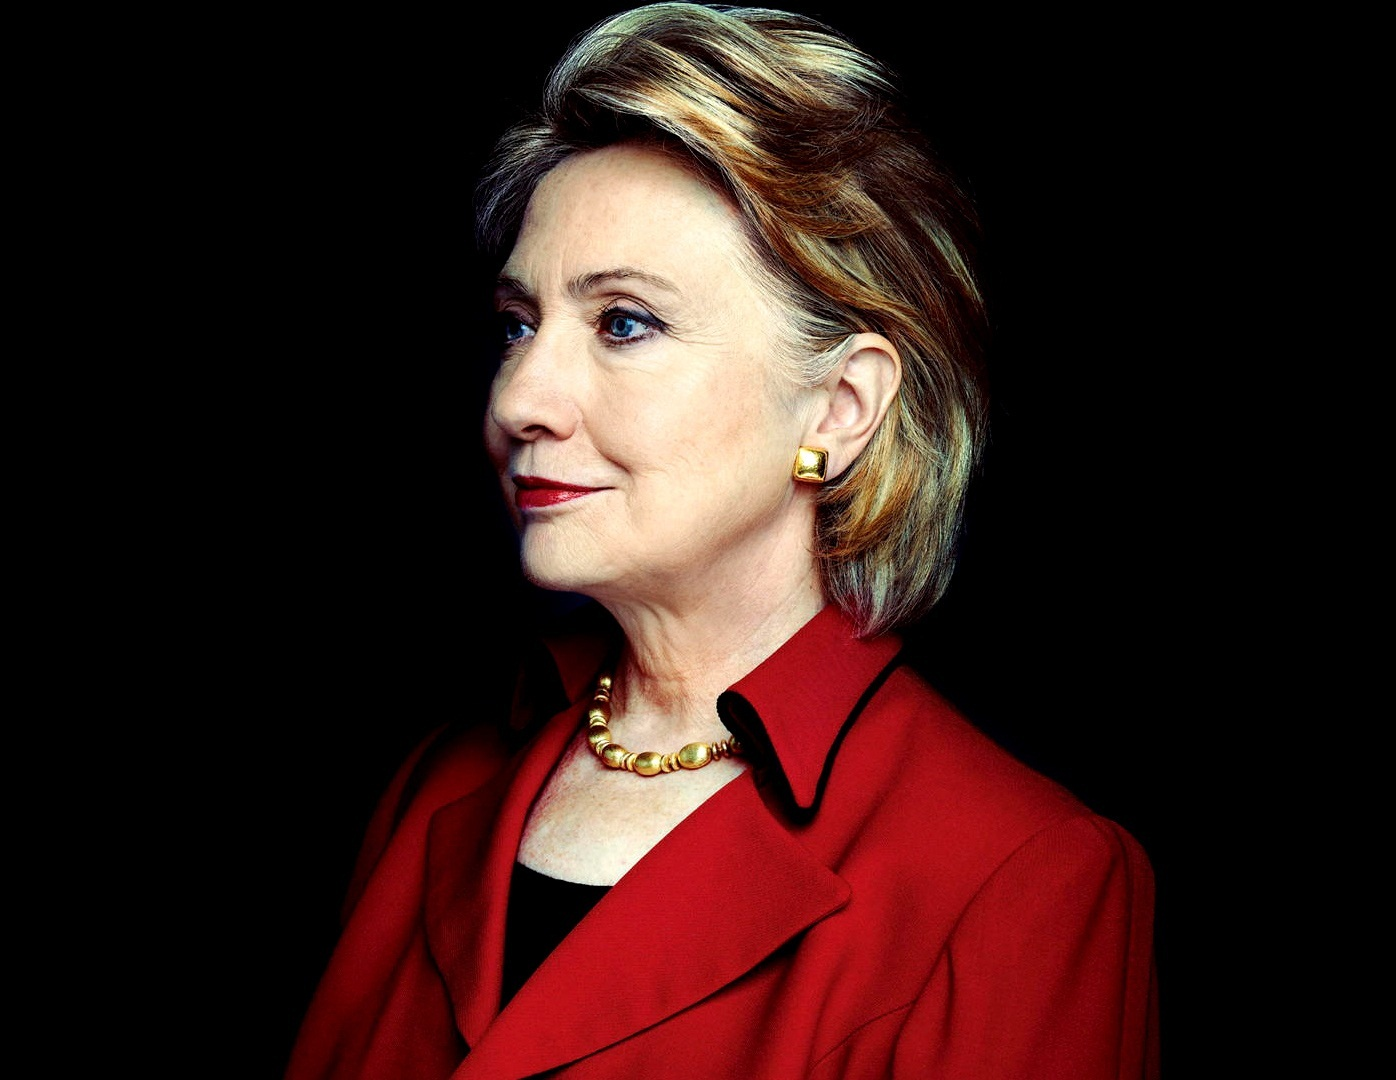 Wallpaper Of Good Morning Quotes 20 Famous Inspirational Hillary Clinton Quotes Quotations